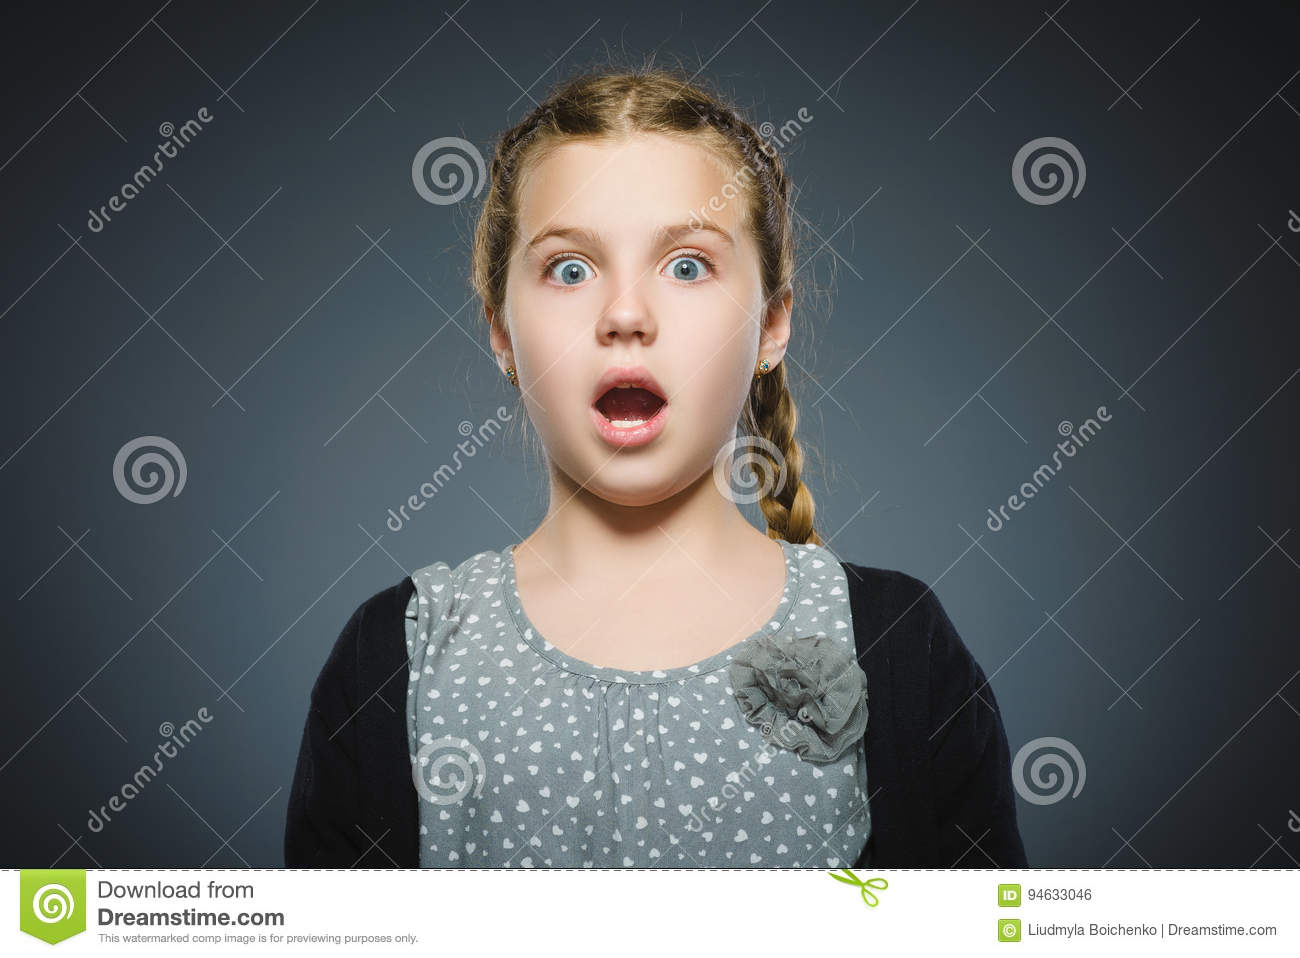 Closeup Scared and shocked little girl. Human emotion face expression